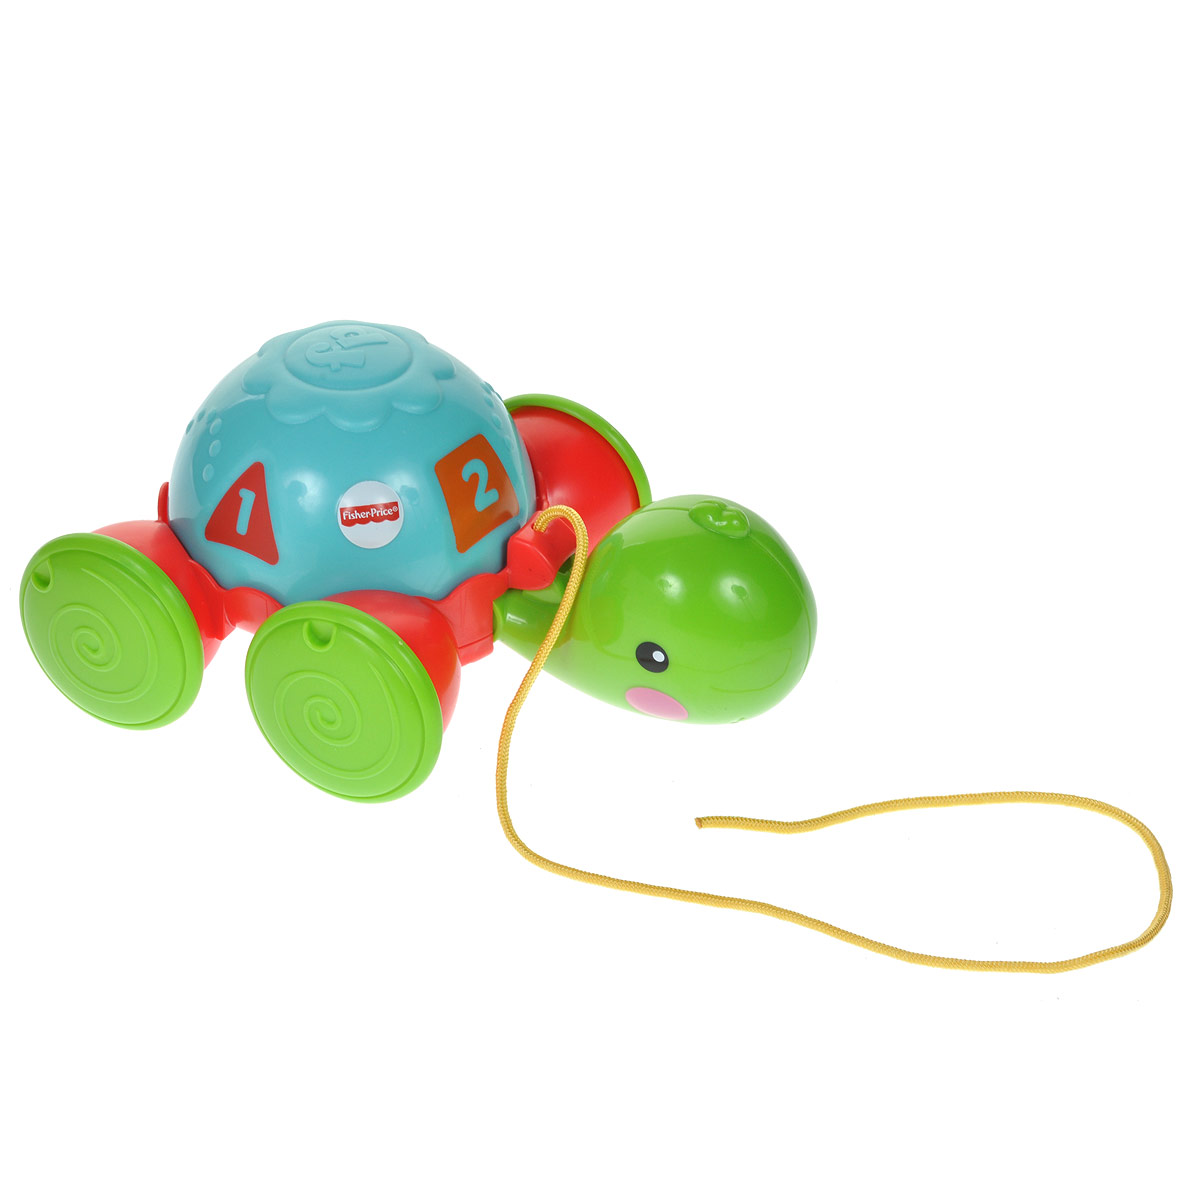 Fisher-Price Infant Каталка Обучающая черепашка на колесиках каталка черепашка